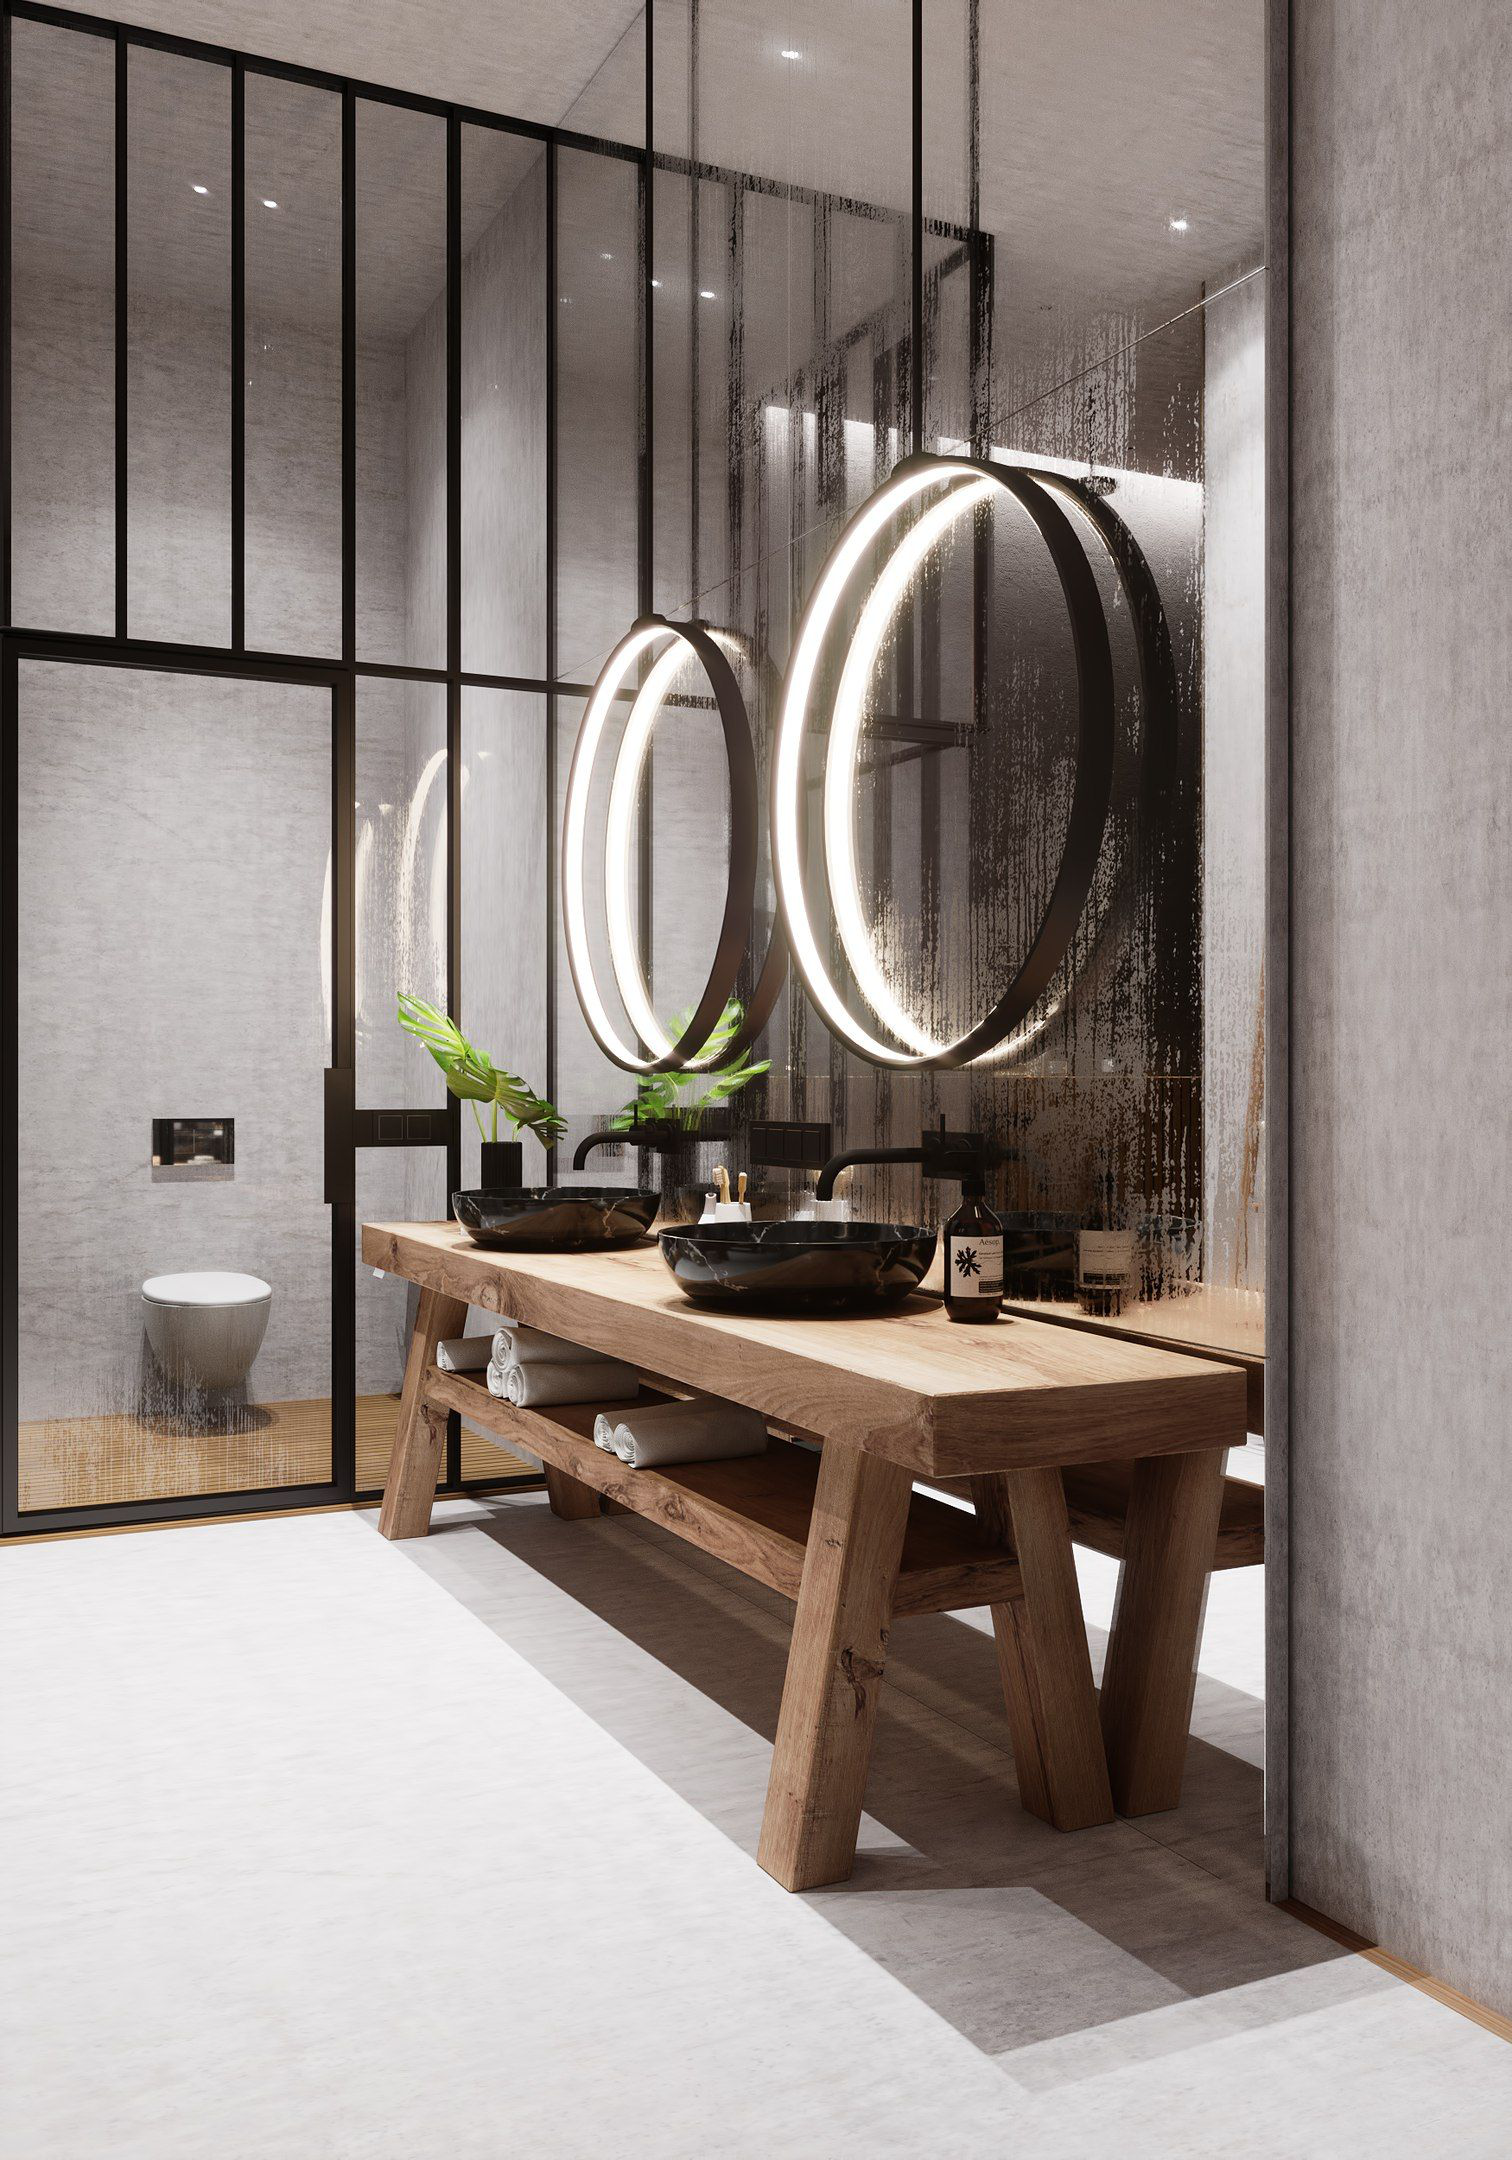 Modern Look In This Bathroom With These Simple Rings Of